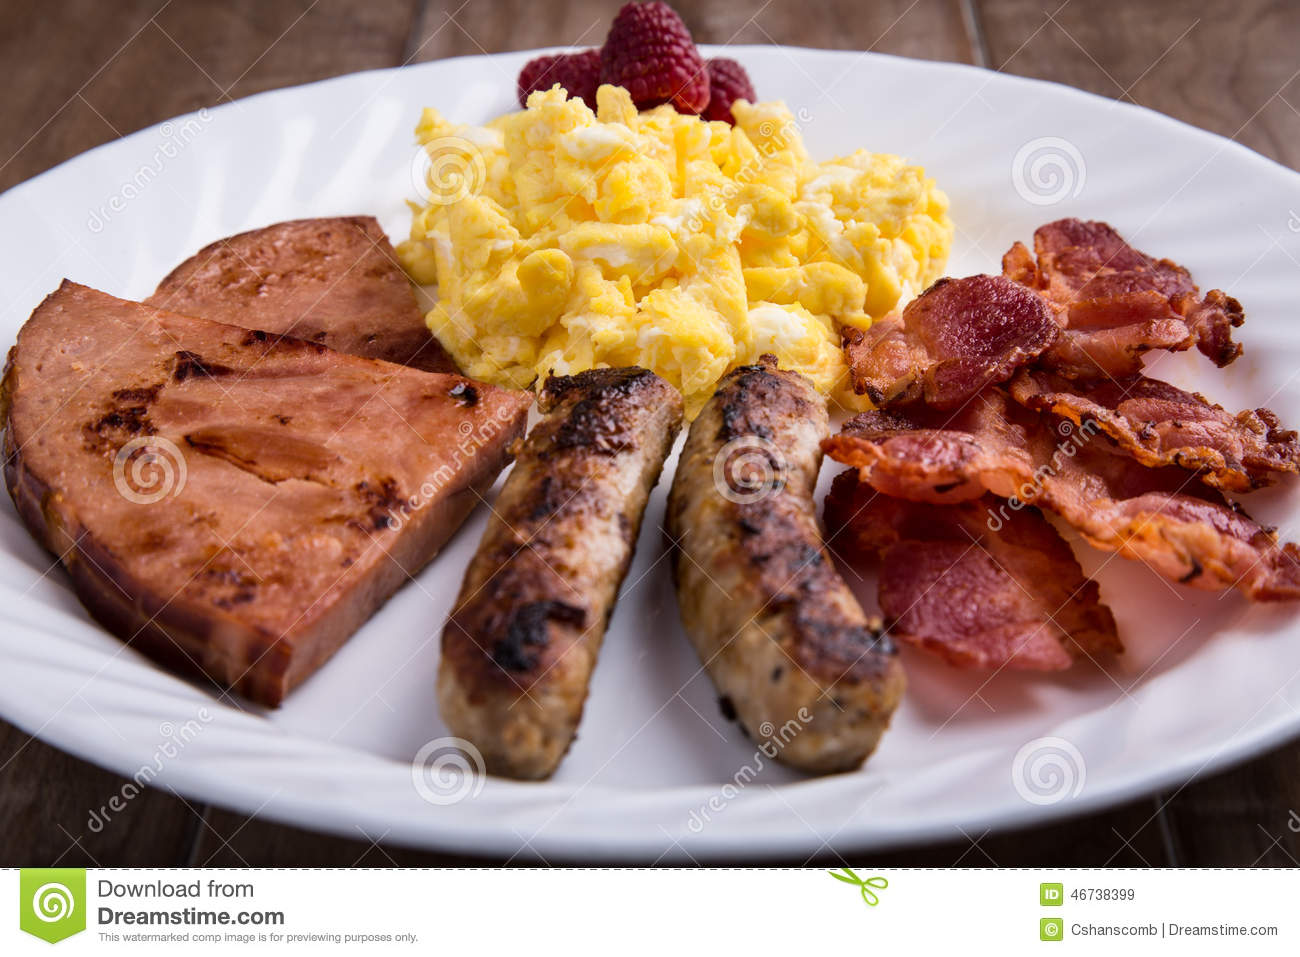 Breakfast ideas with eggs and sausage